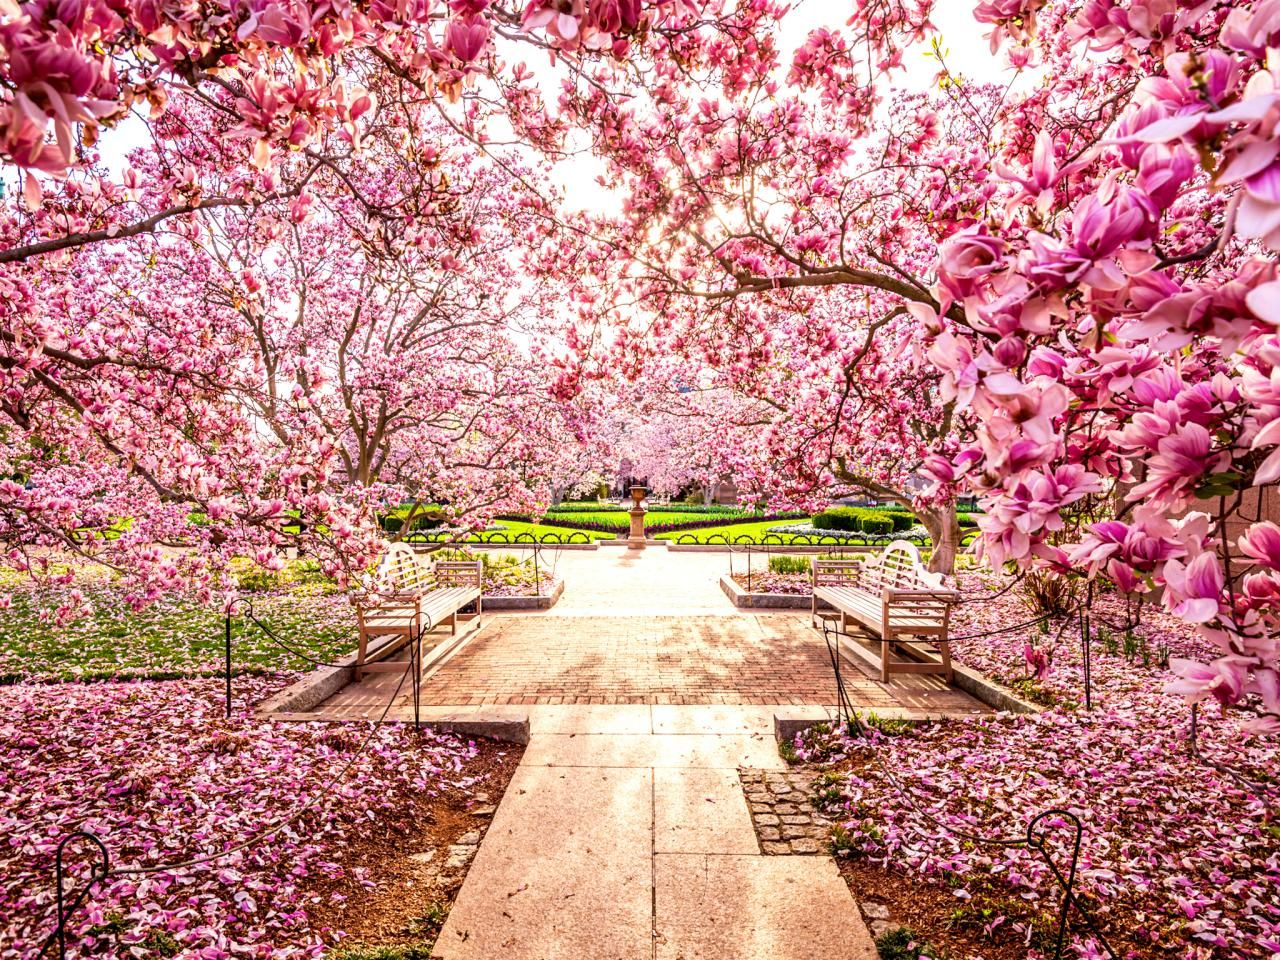 You Can See Them Everywhere National Cherry Blossom Festival Travelchannel Com Cherry Blossom Festival Cherry Blossom Japan Cherry Blossom